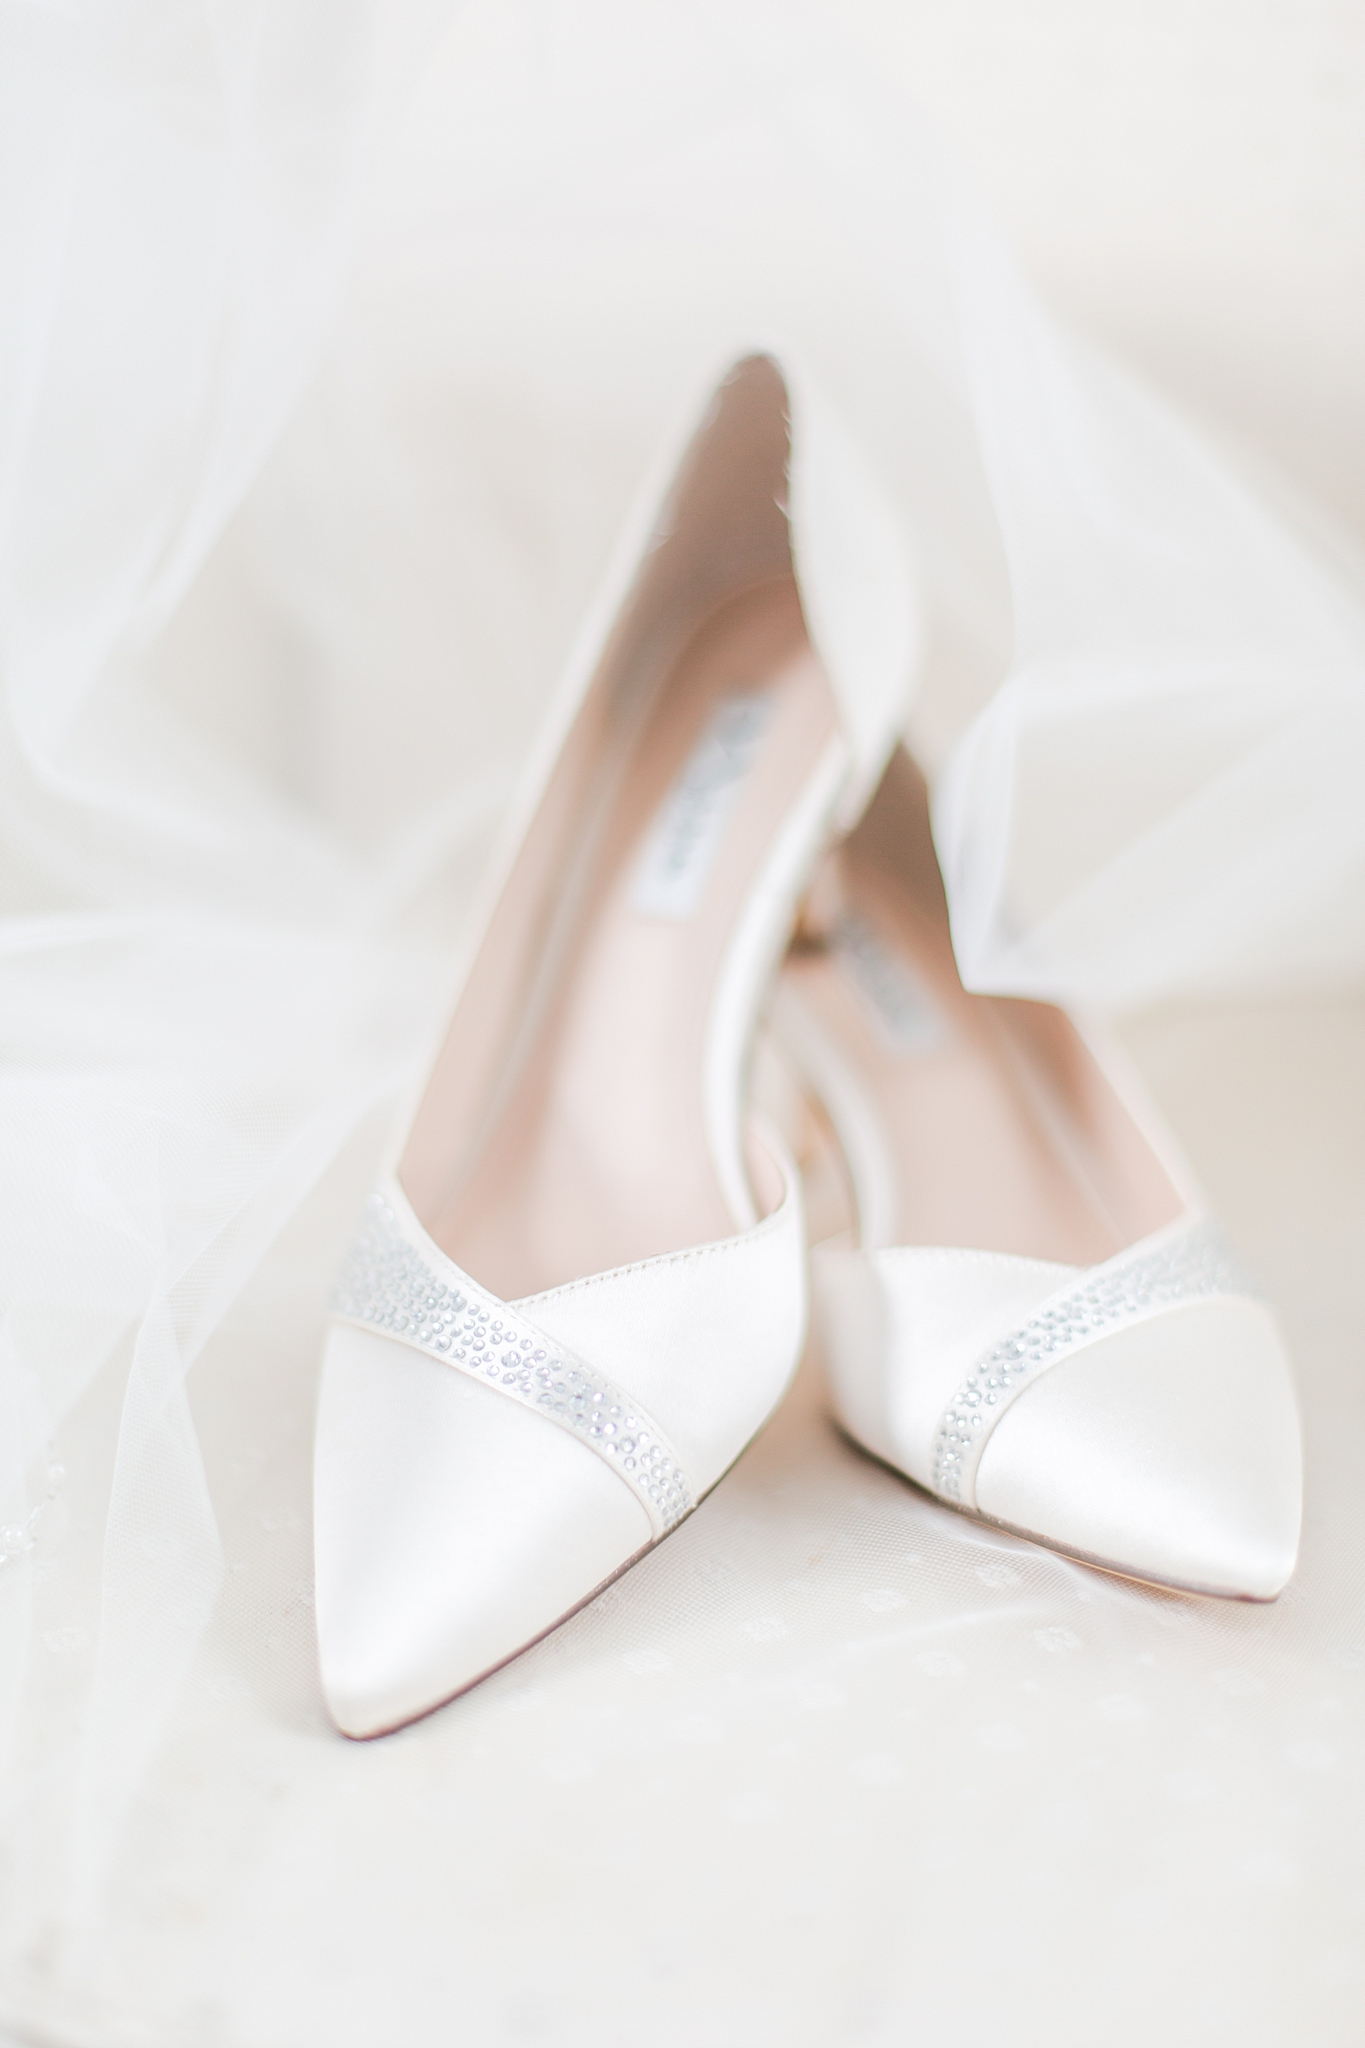 chapman-house-casually-chic-wedding-photography-in-rochester-michigan-by-courtney-carolyn-photography_0003.jpg